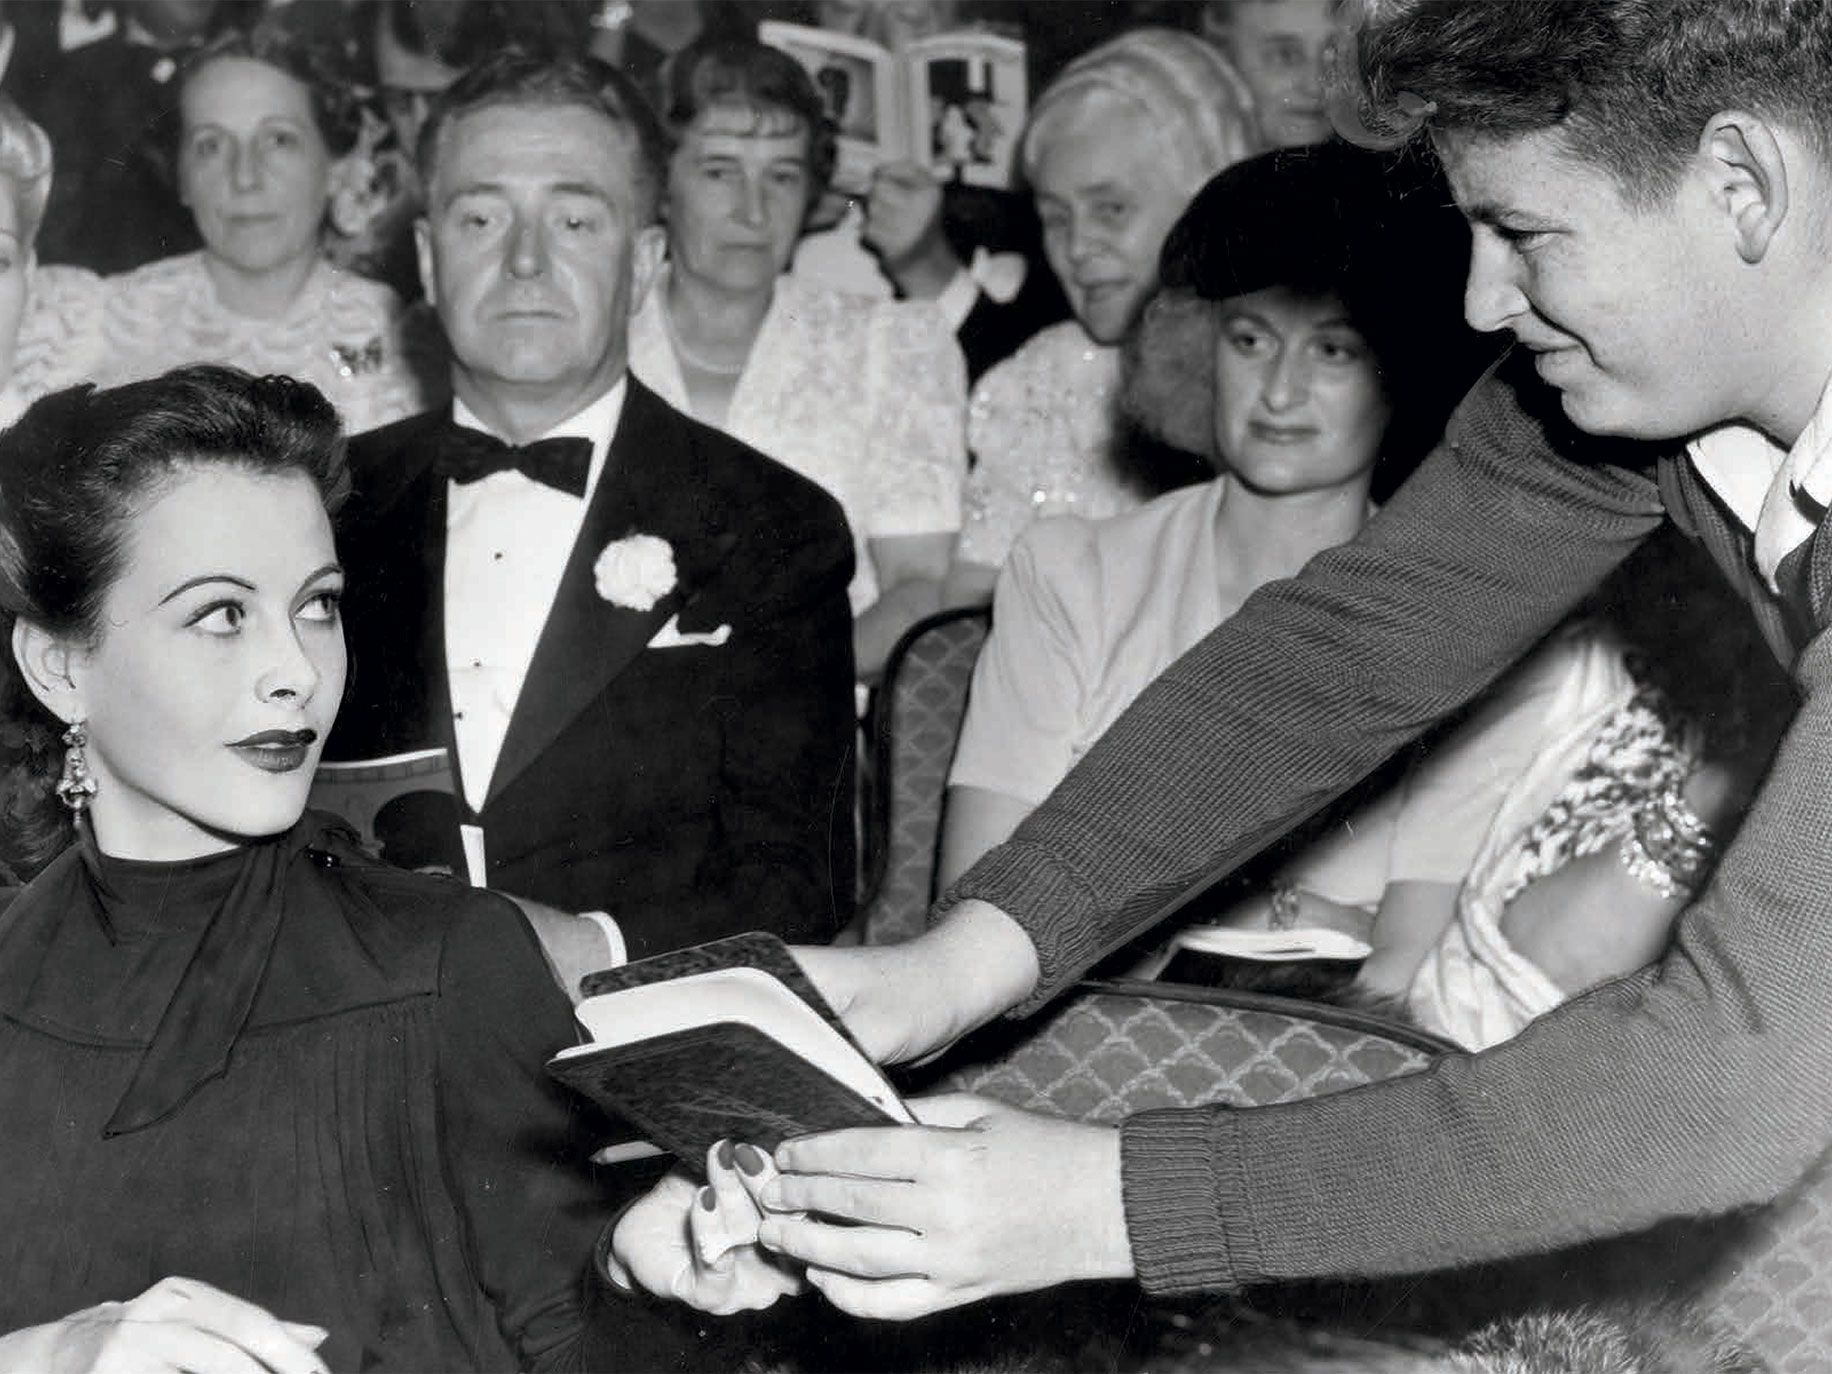 Hedy Lamarr signs an autograph book at the El Capitan Theatre in Hollywood, 1940. Photo from The Autograph Book of L.A.: Improvements on the Page of the City.